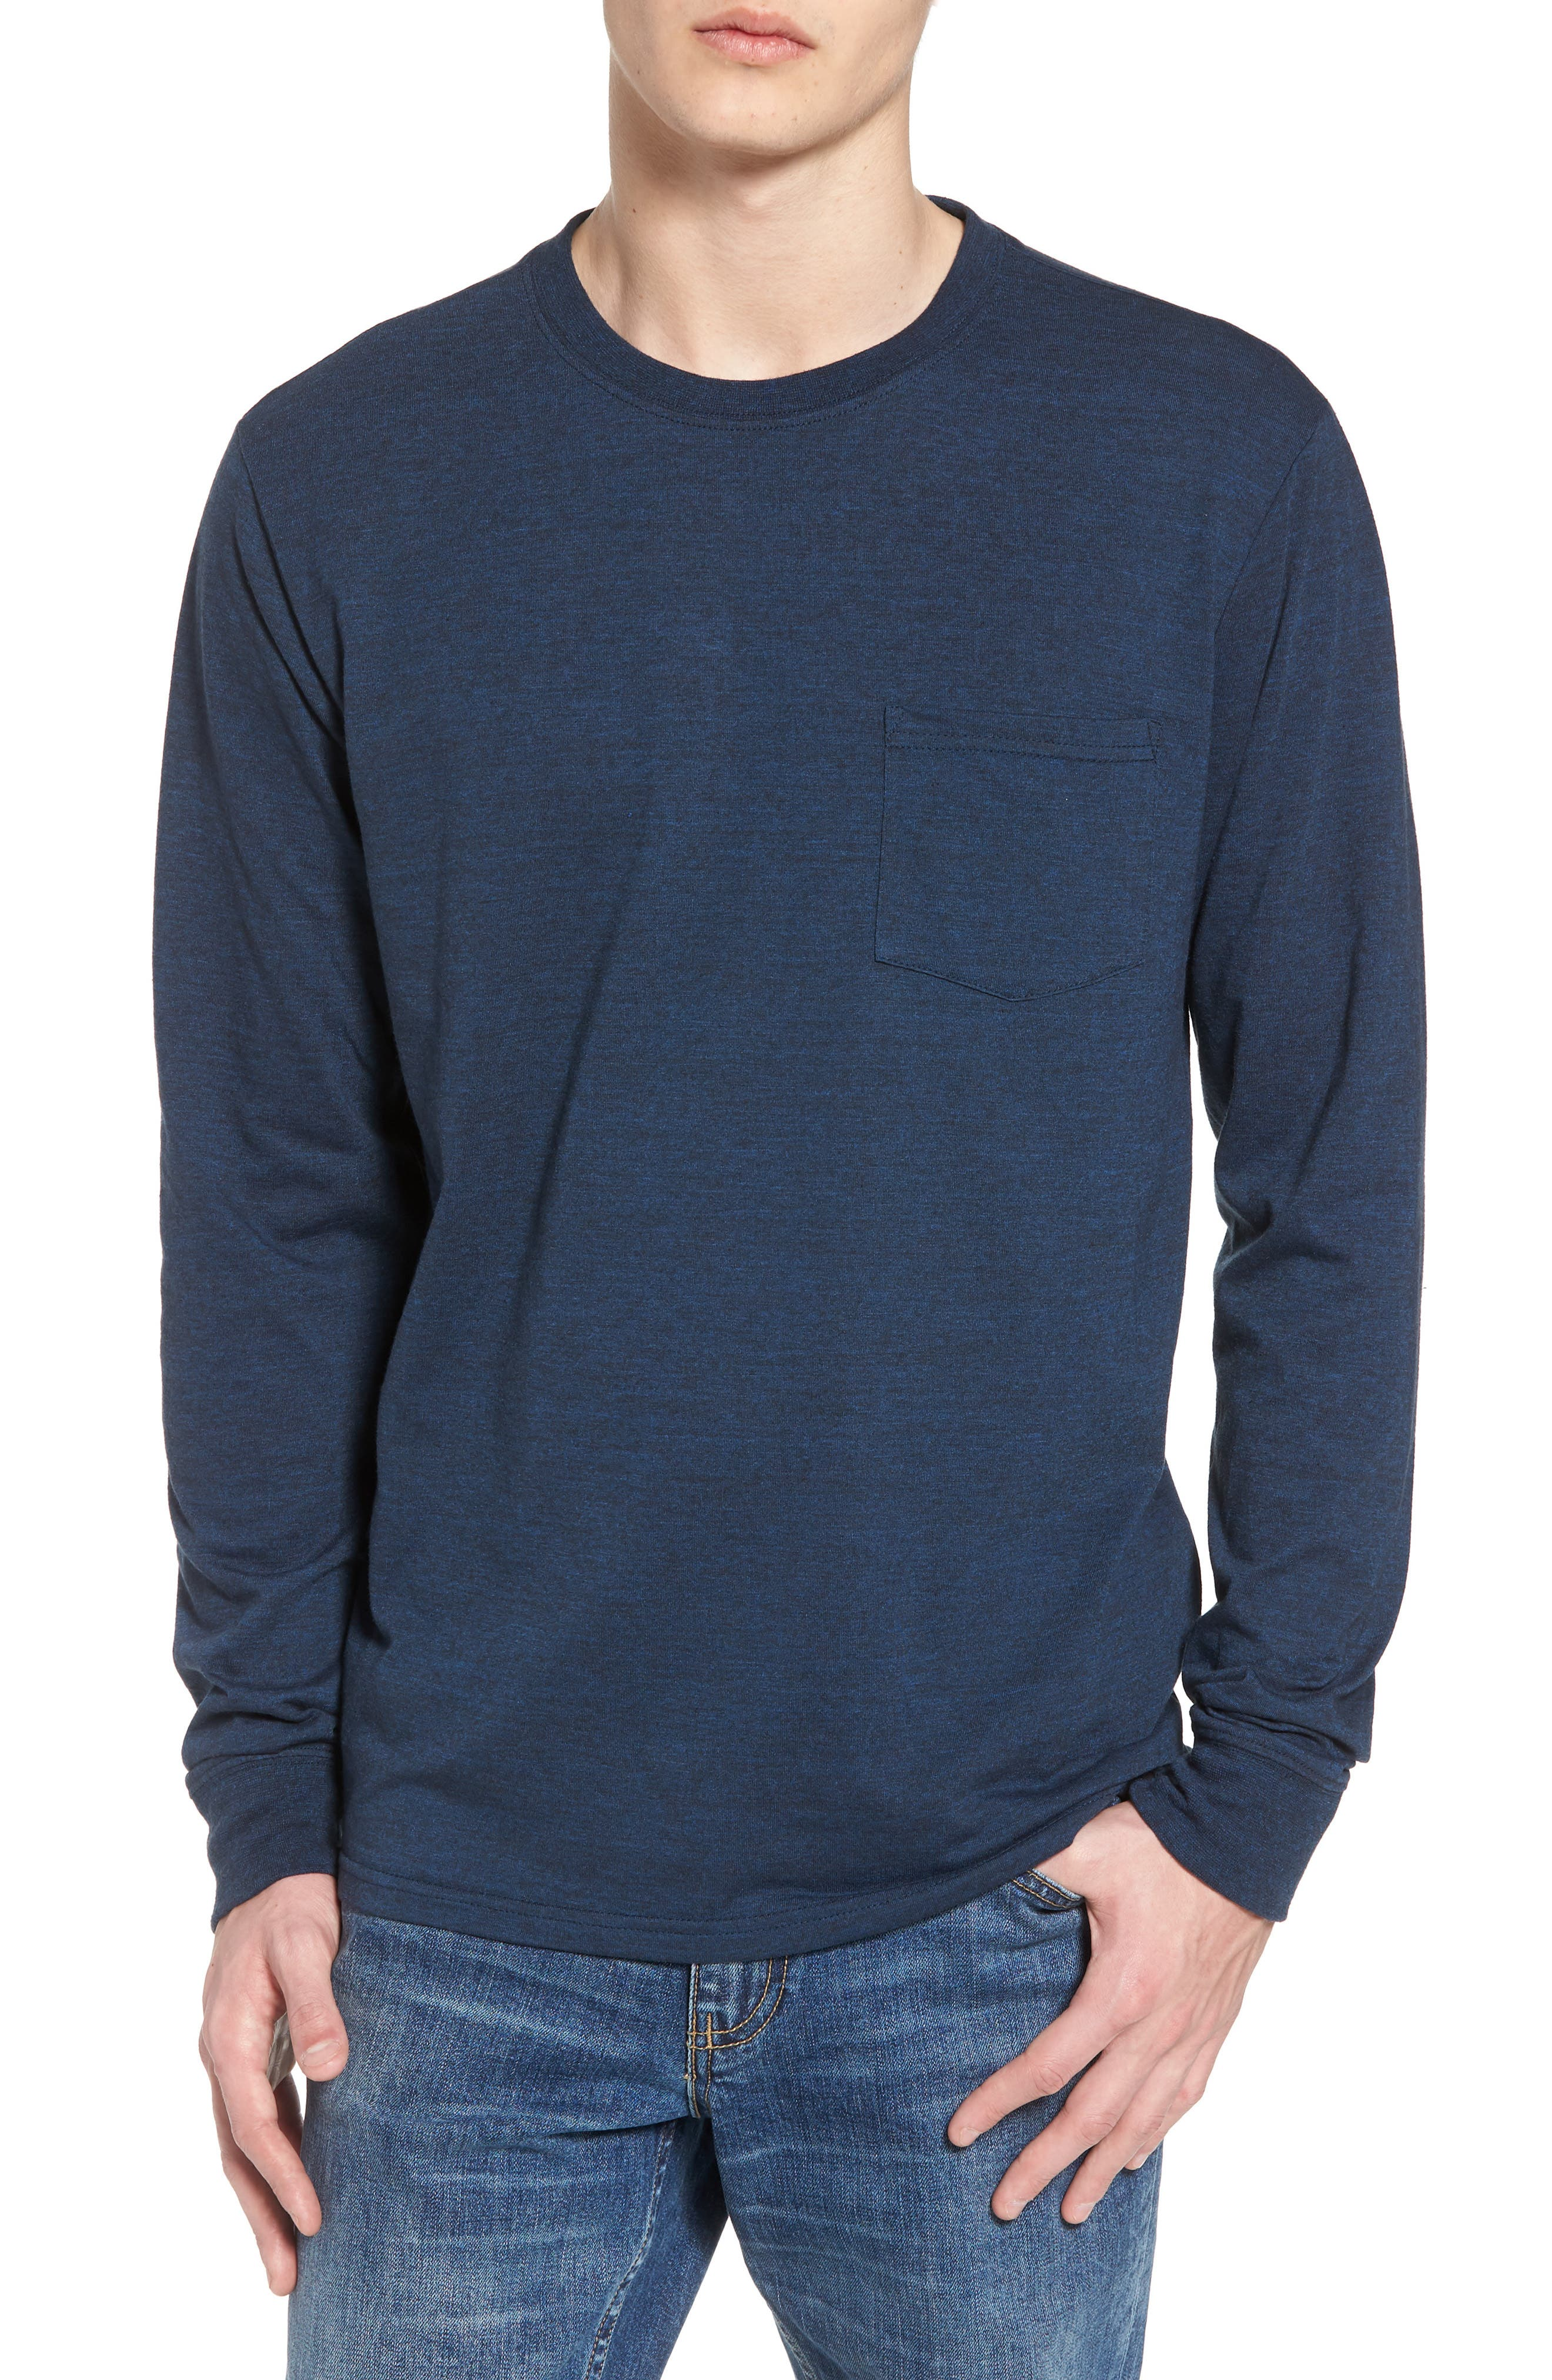 Threads for Thought Pocket Crew T-Shirt,                         Main,                         color, Midnight